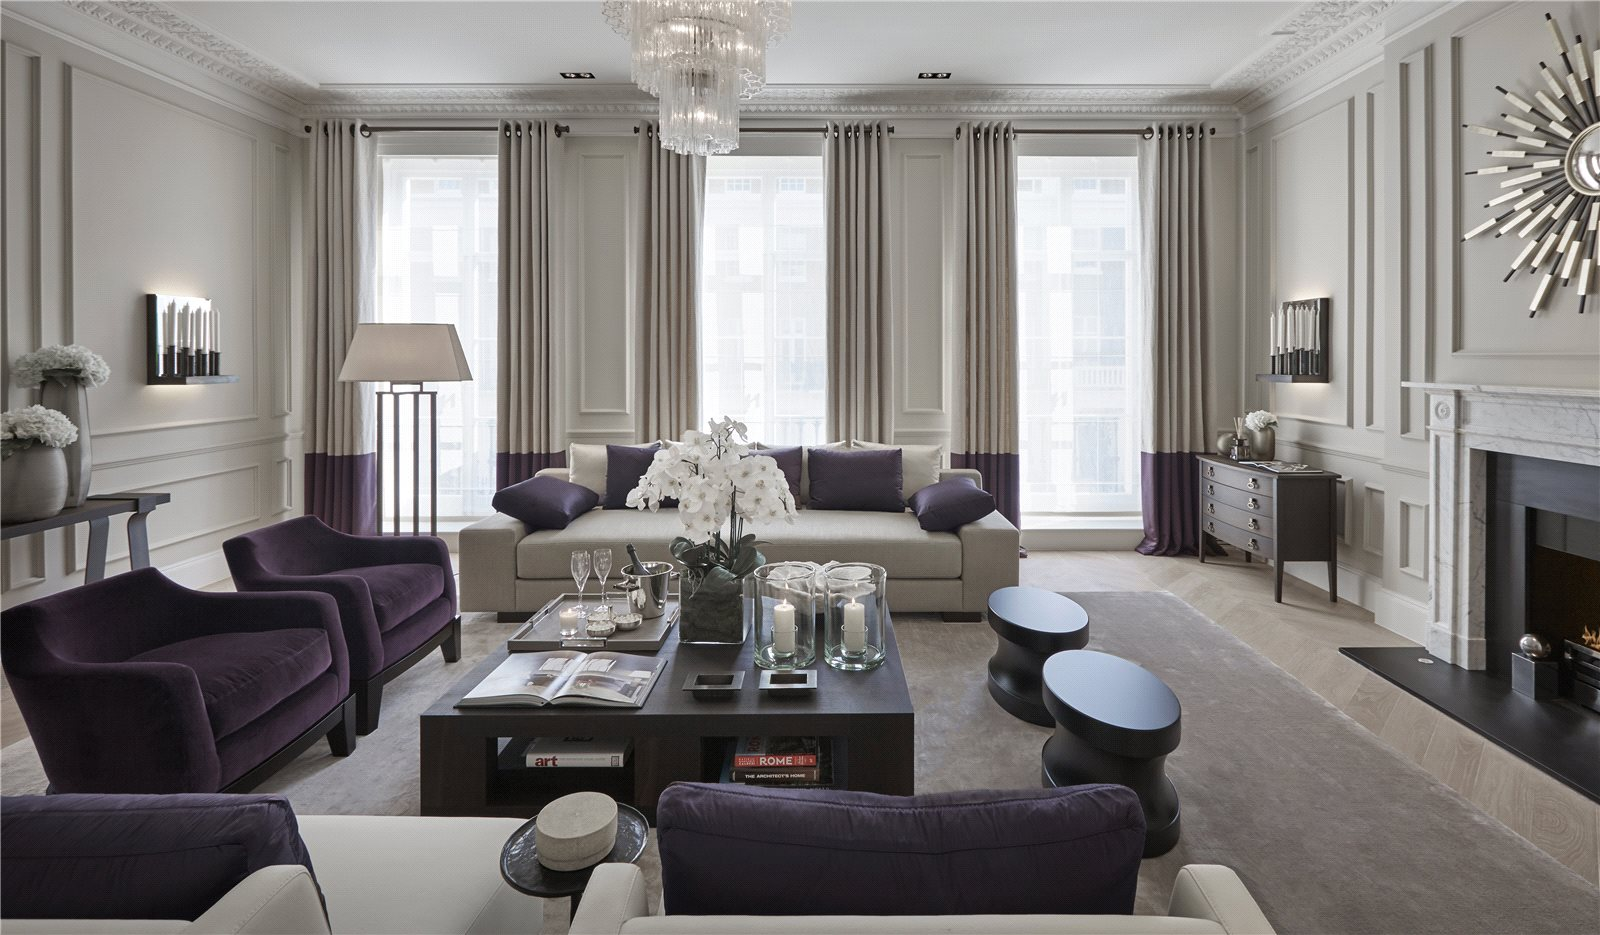 Single Family Home for Sale at Eaton Place, Knightsbridge, London, SW1X Knightsbridge, London, England